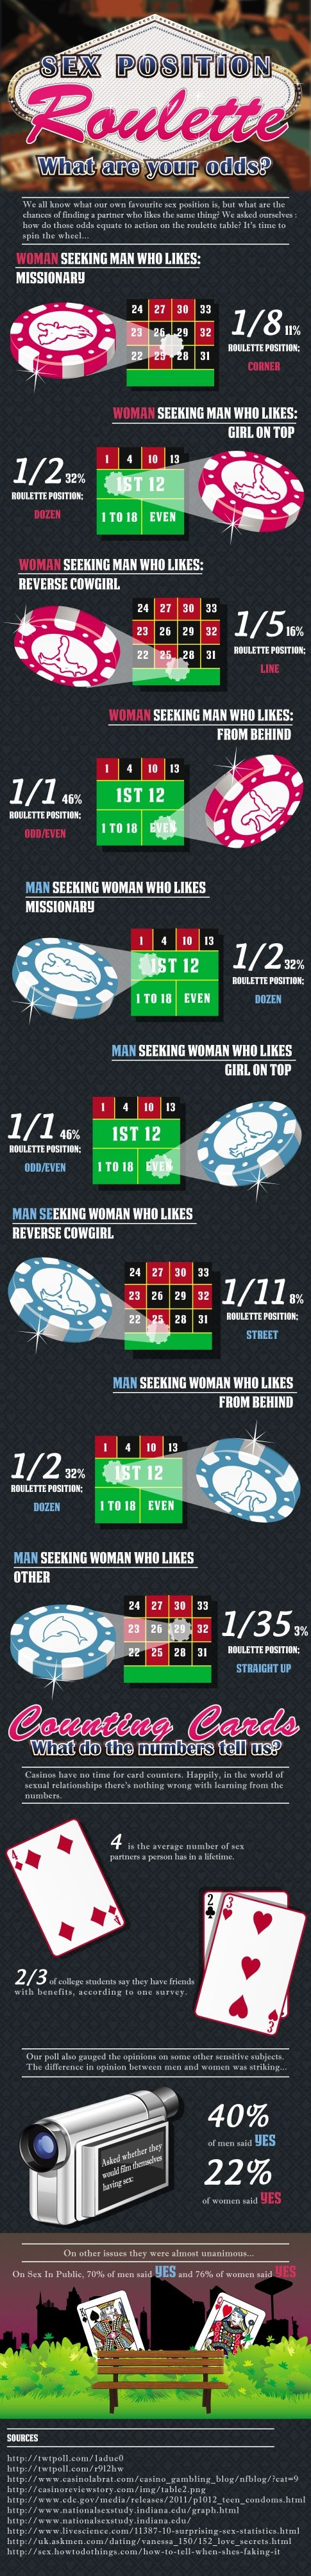 #INFOGRAPHIC: Sex Position Roulette   ::   This is FUNNY! Now I know what are the statistics of sexual positions are!